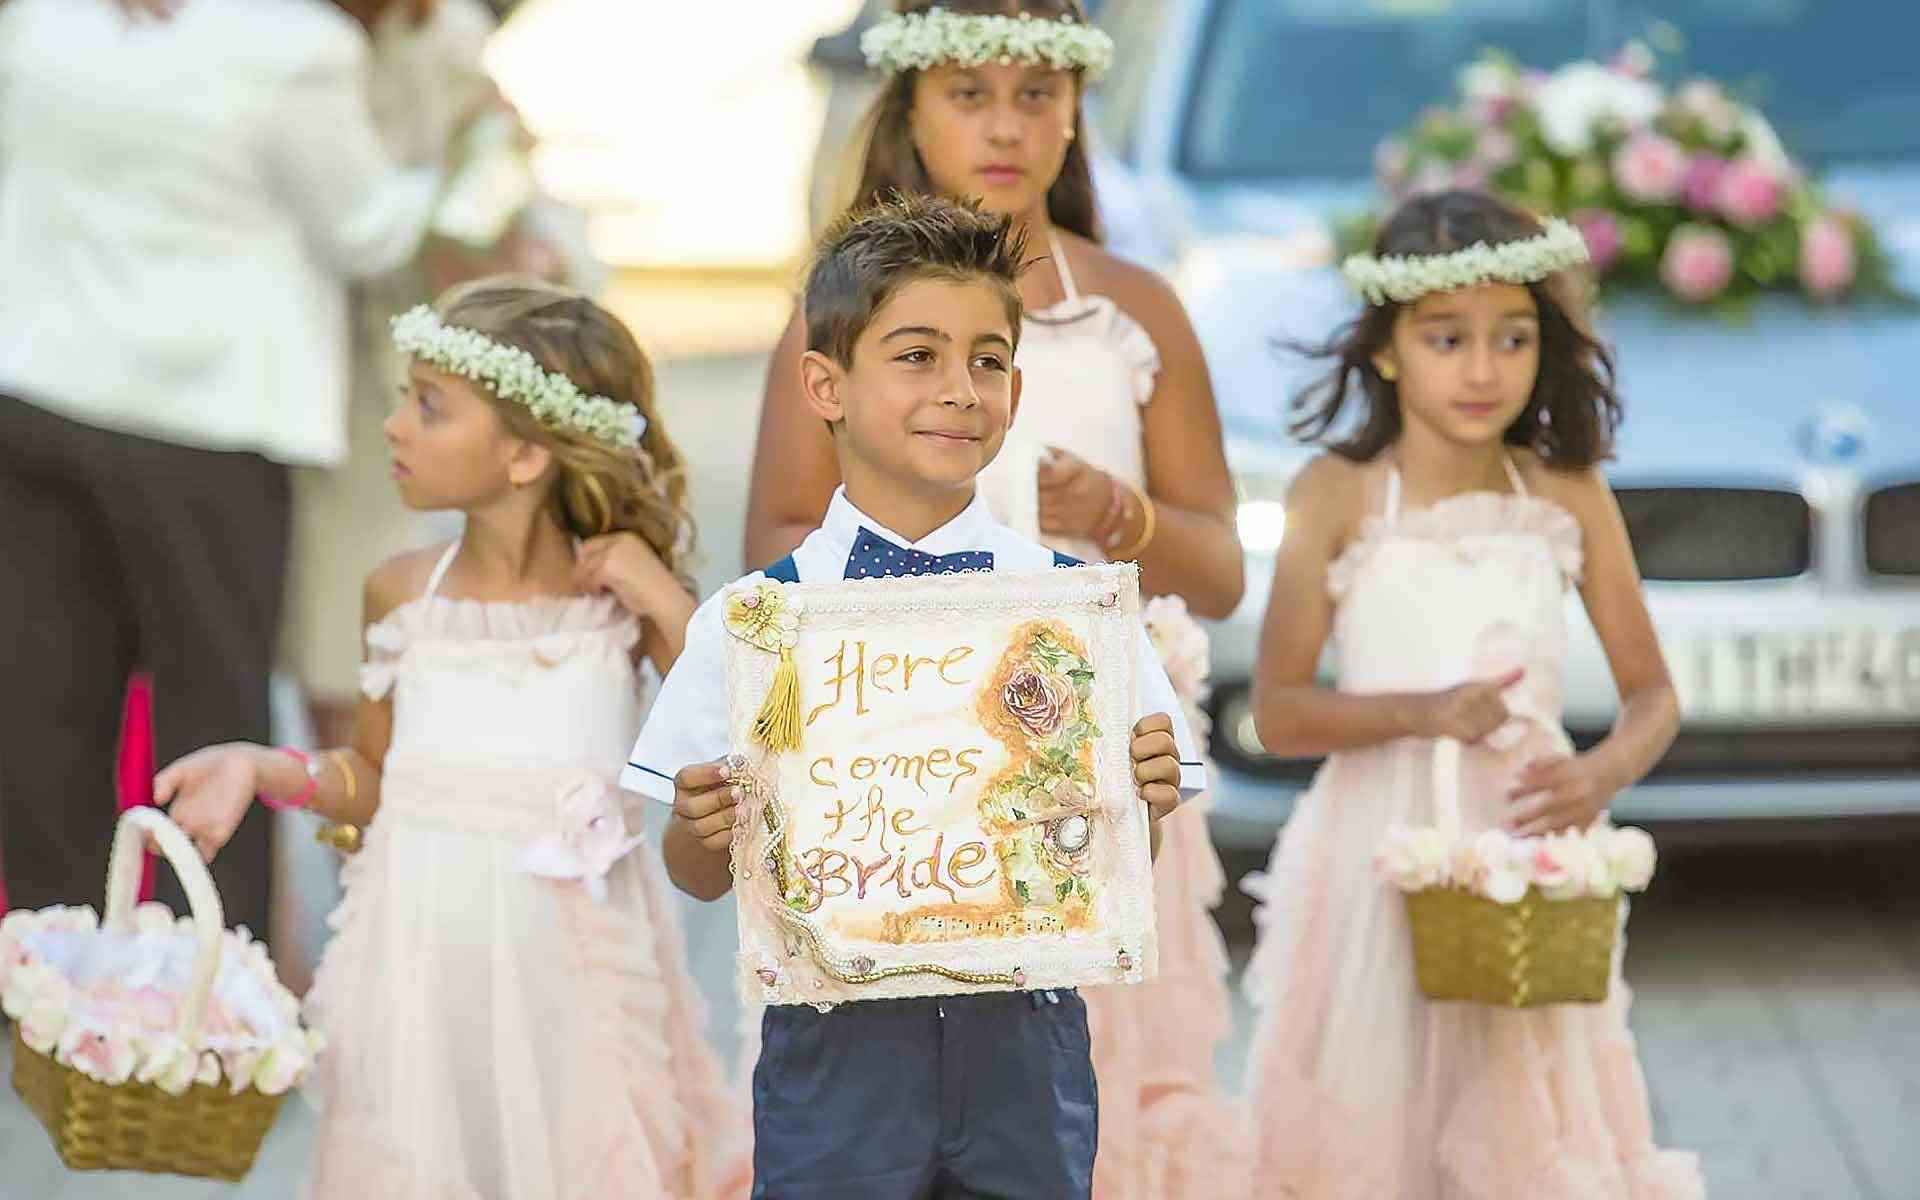 Sweet-Innocence-Ring-Bearer-Boasting-A-Here-Comes-The-Bride-Sign-Flower-Girls-To-Enchant-The-Way-With-Rose-Petals